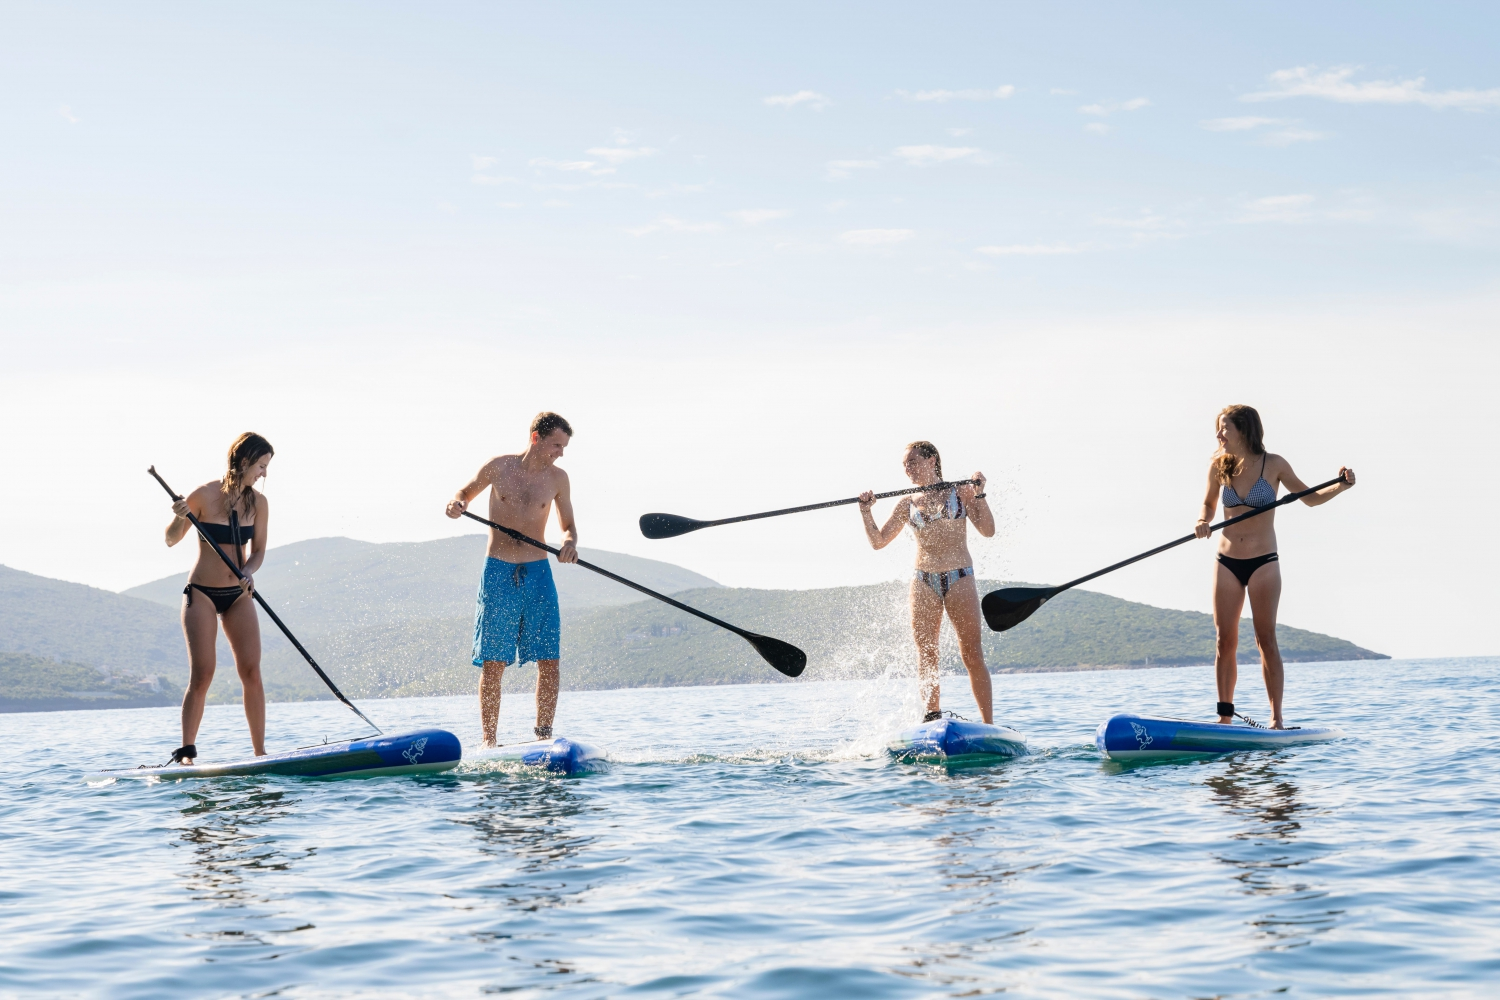 The SUP races at Luštica Bay